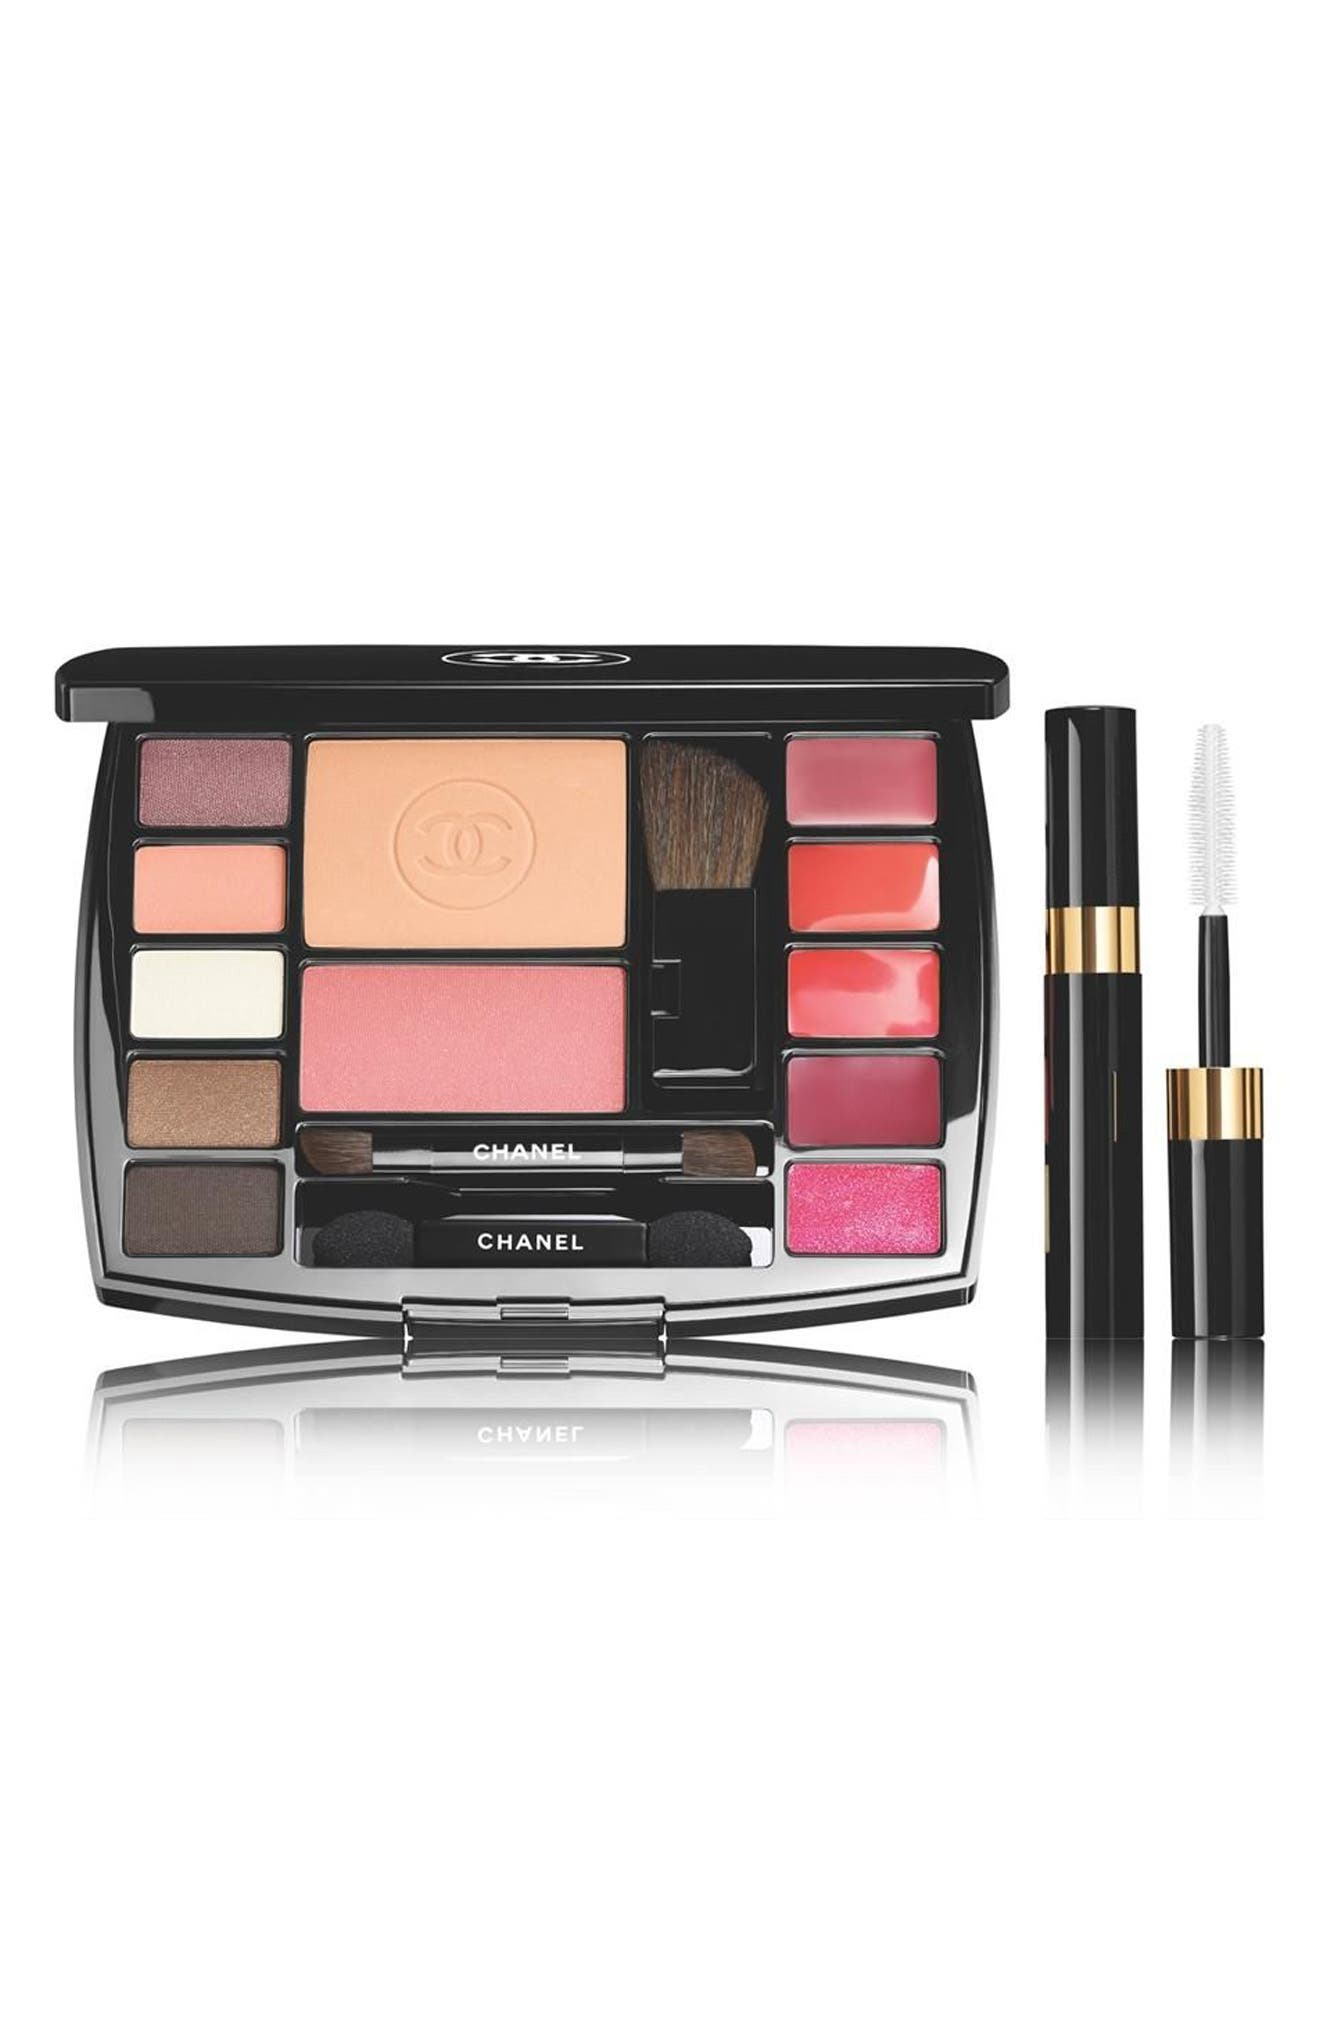 CHANEL TAKE FLIGHT 